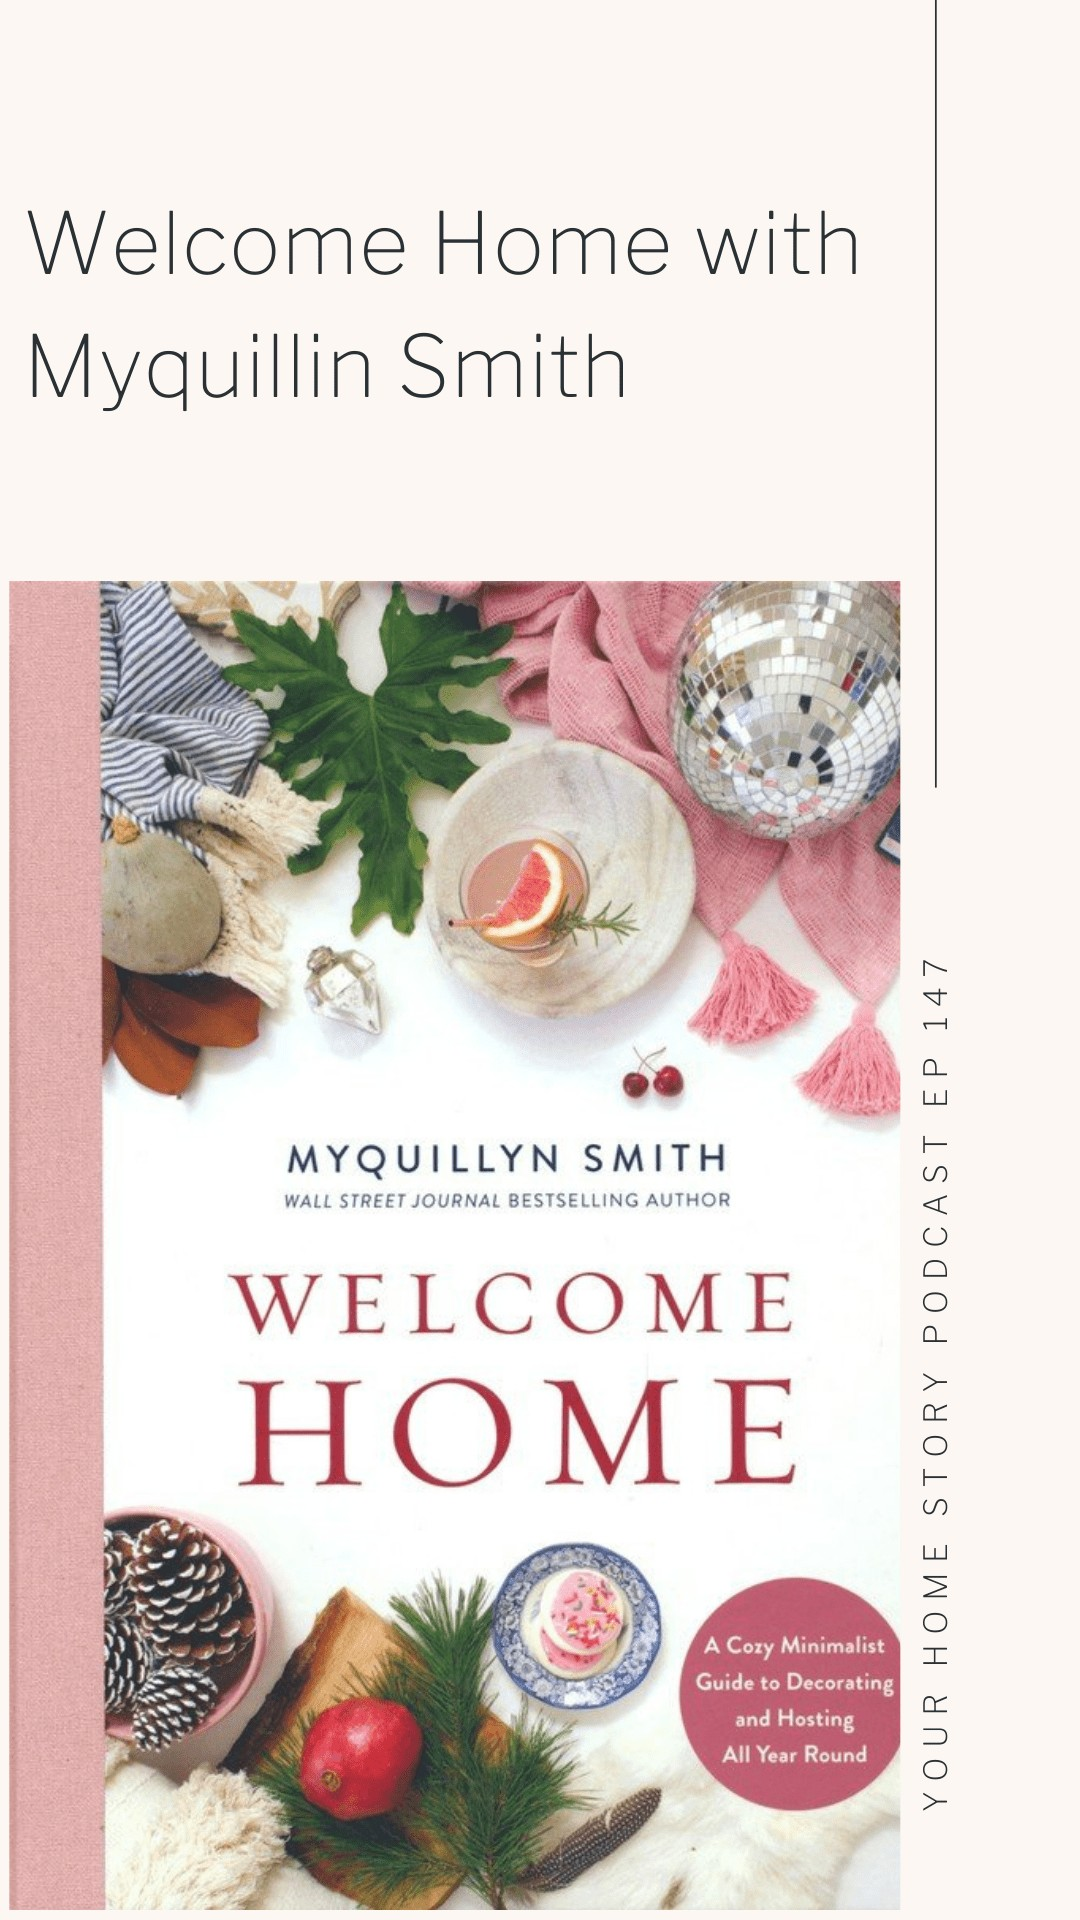 Welcome Home book with Myquillin Smith